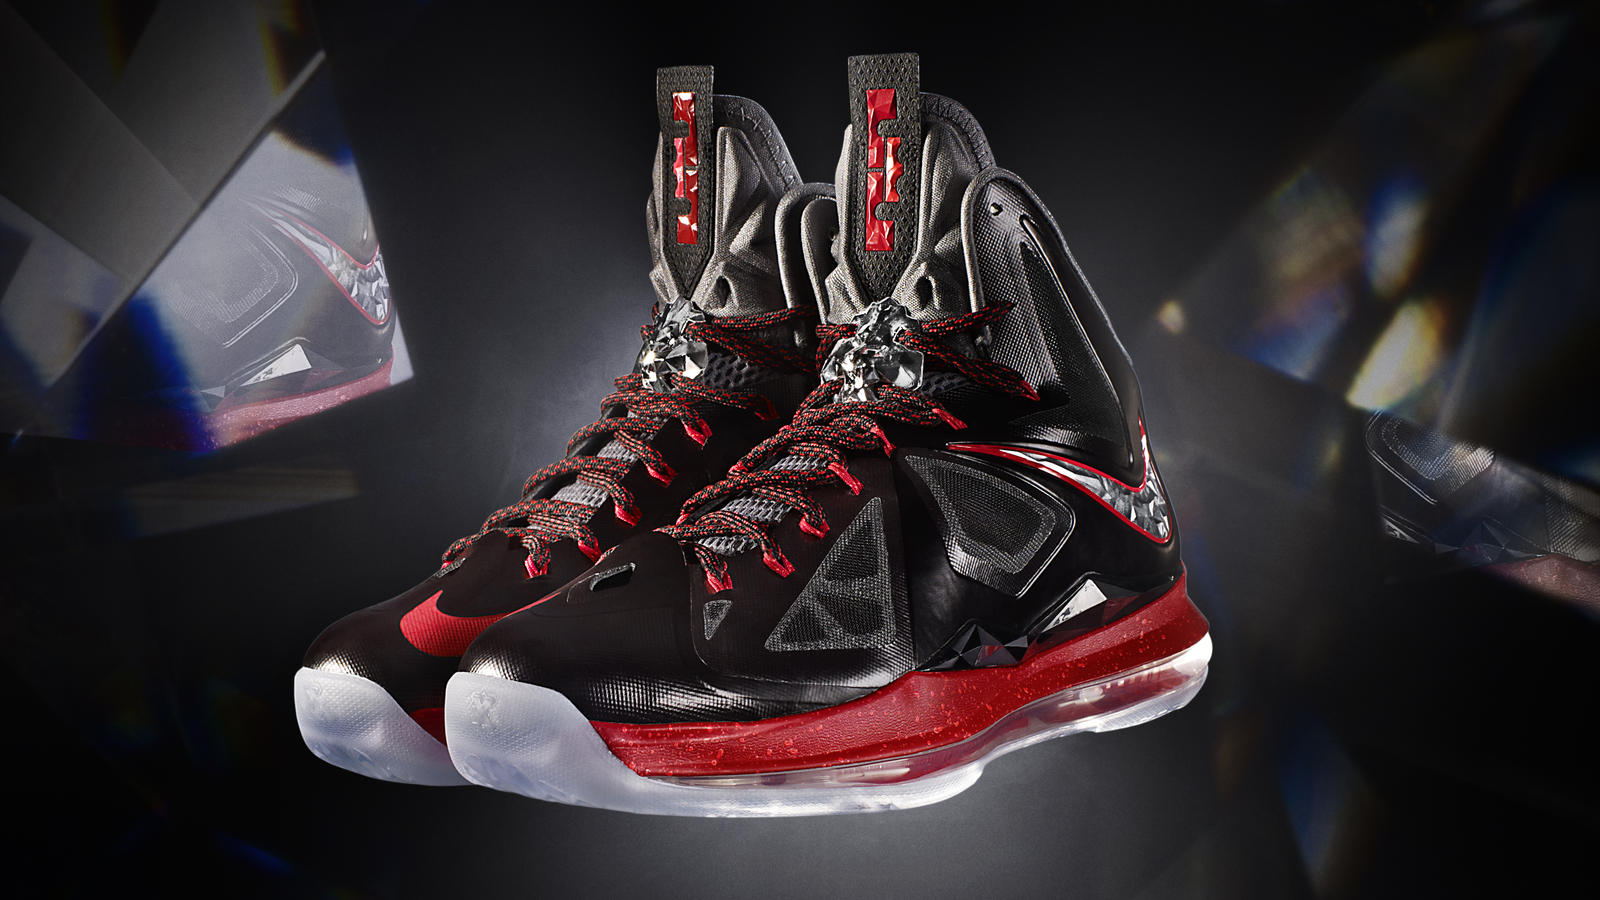 lebron x shoes latest model of nike running shoes